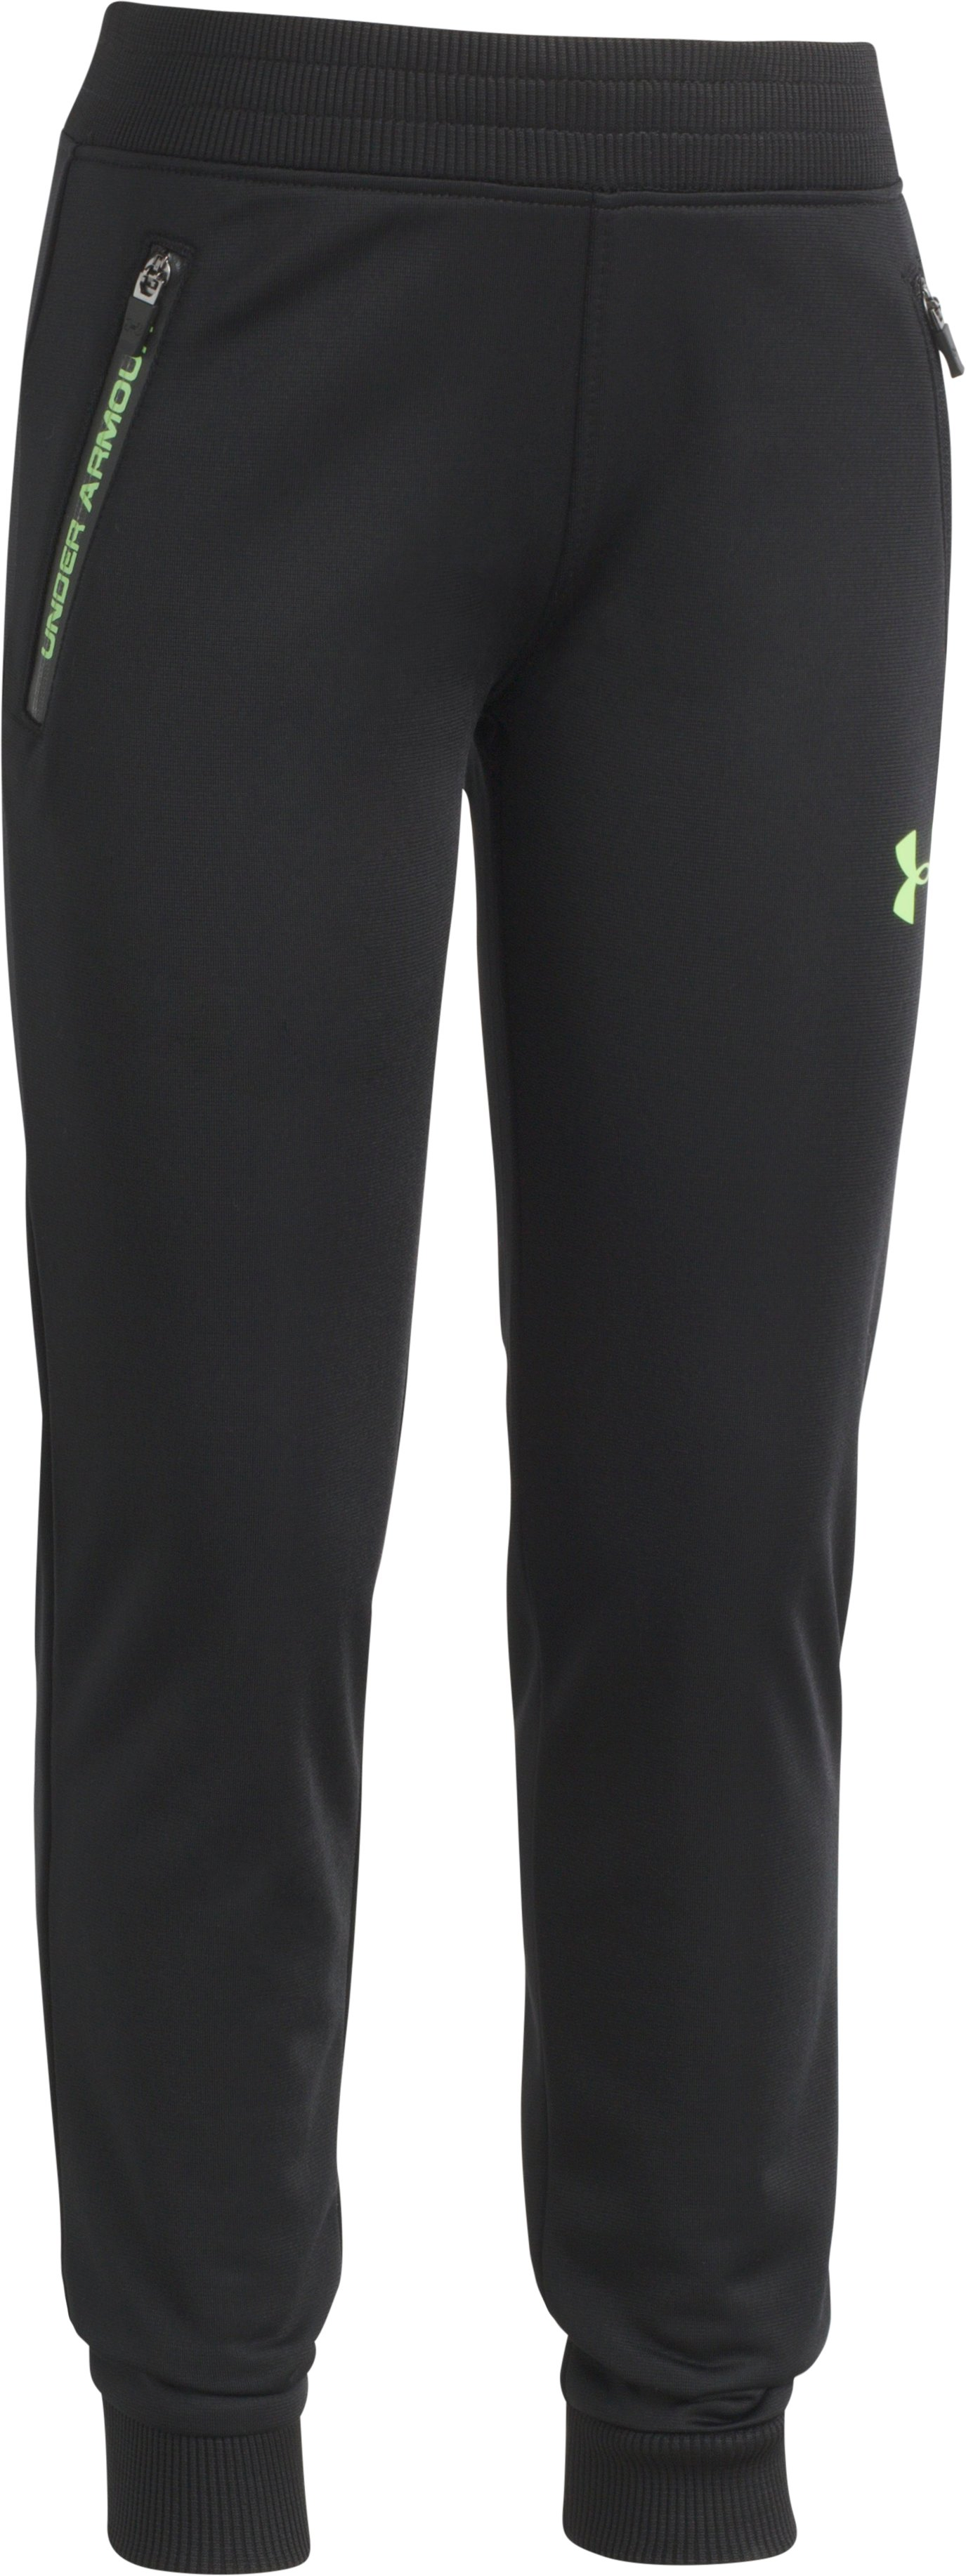 Boys' Toddler UA Pennant 2.0 Tapered Pants, Black